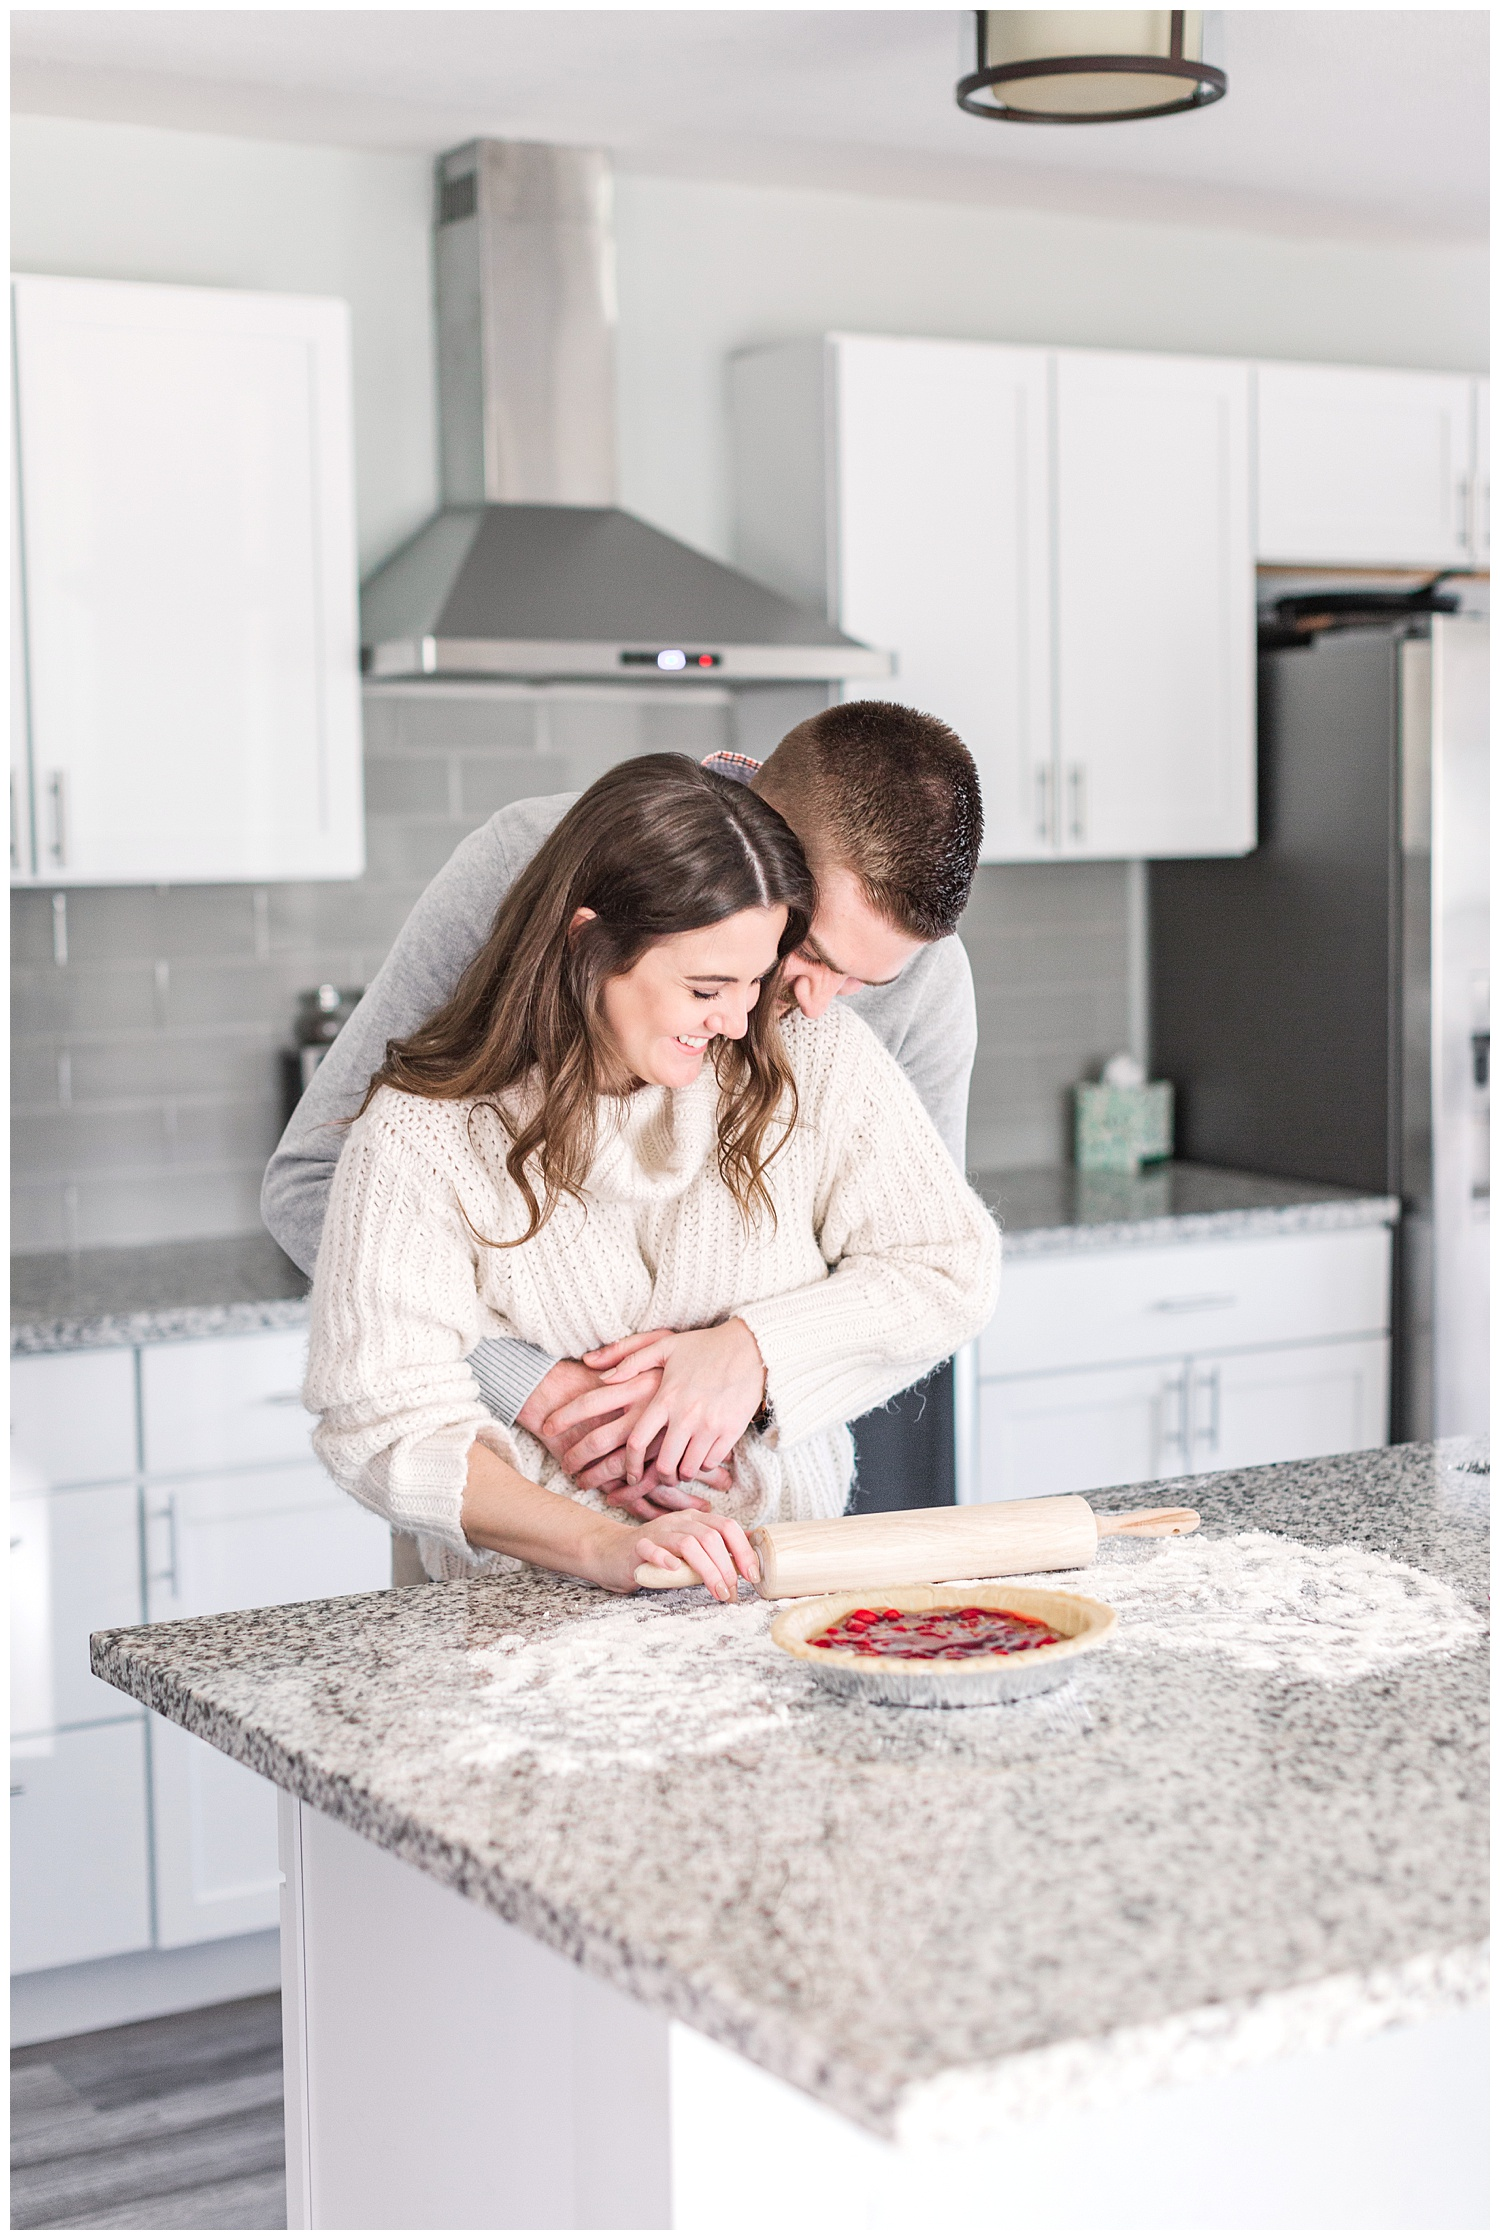 Dustin embraces Jenna from behind while she bakes a cherry pie | Cozy Kitchen Engagement Session | CB Studio